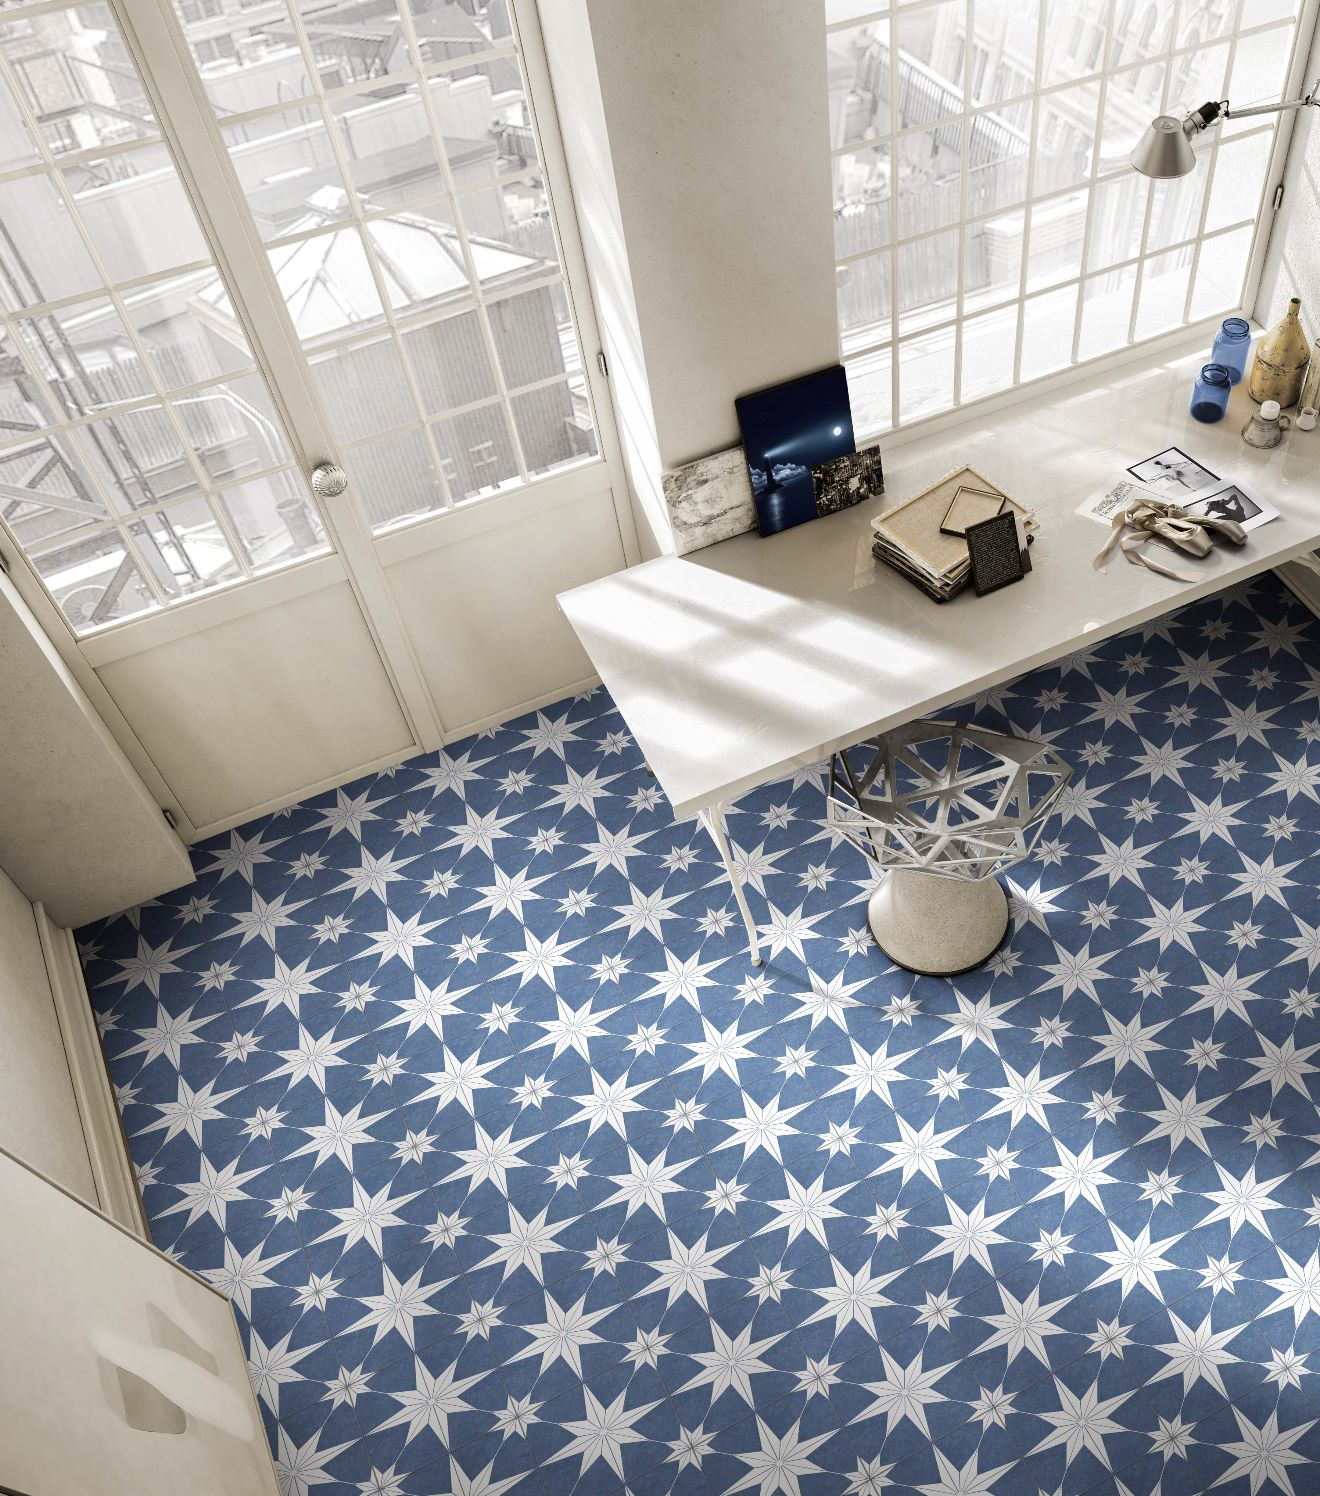 Stella Day Porcelain Tiles